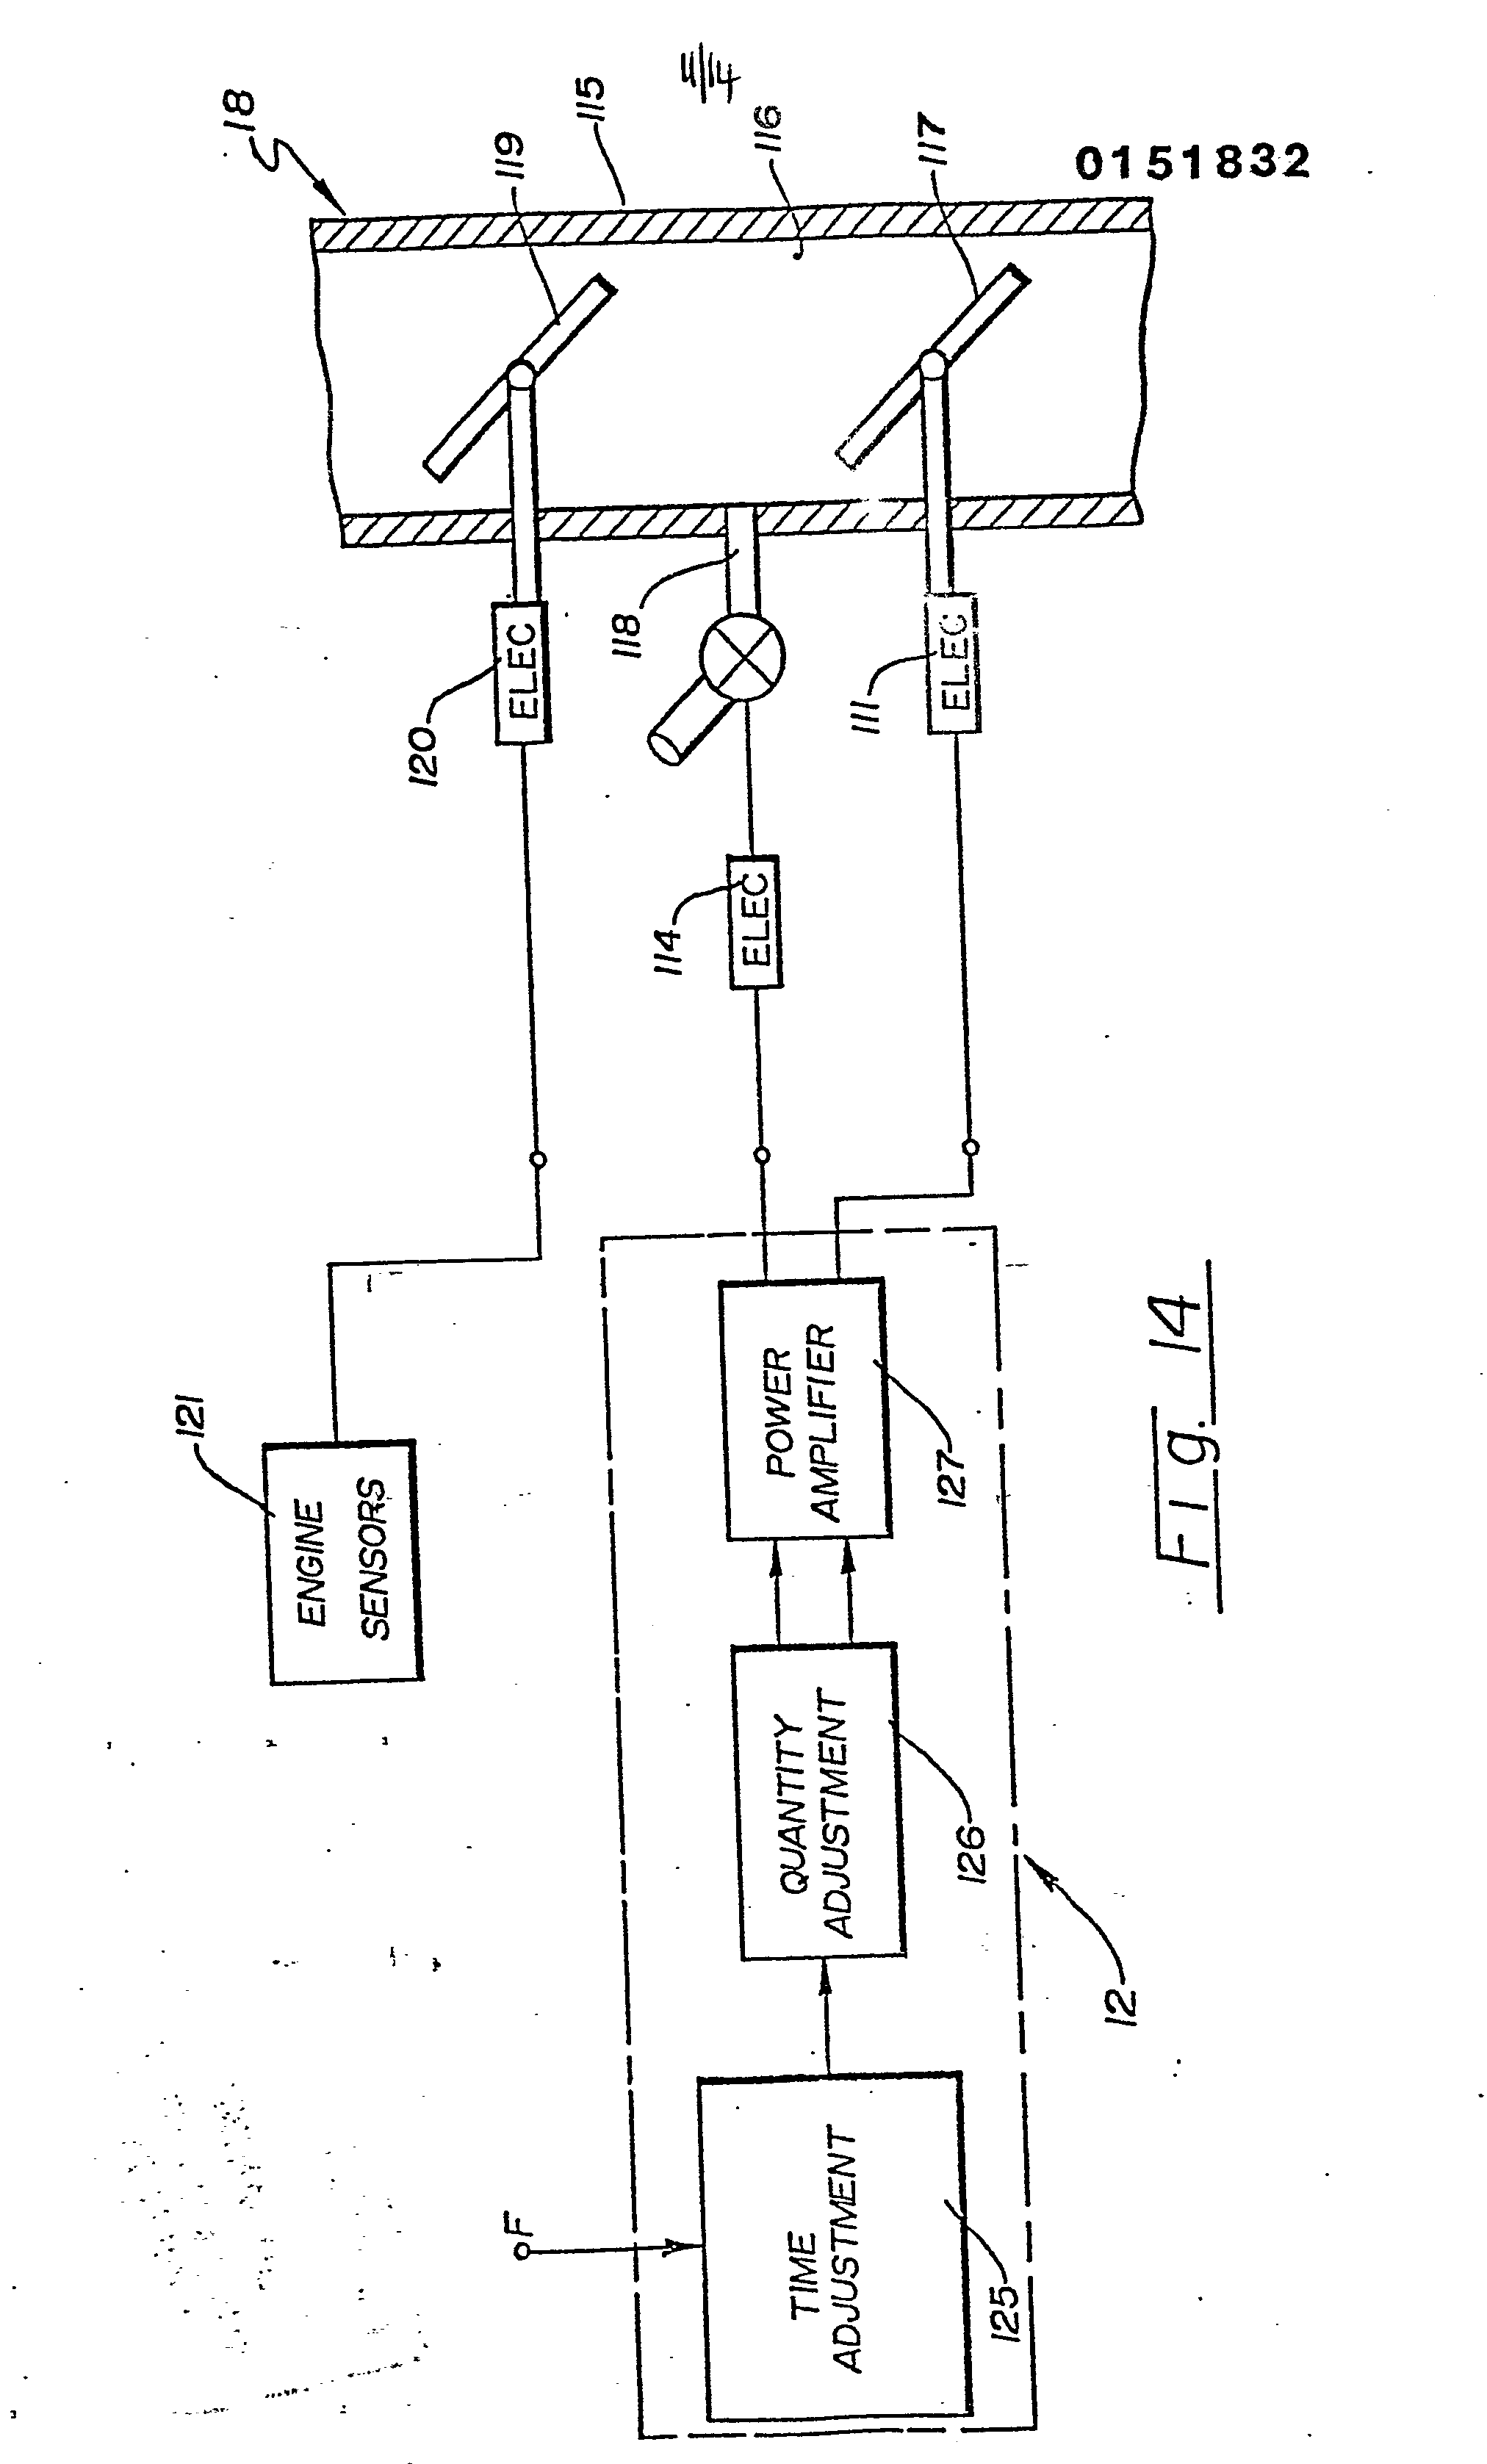 Patent Ep0151832a1 Ignition And Fuel Control System For Internal I5 Engine Diagram Drawing